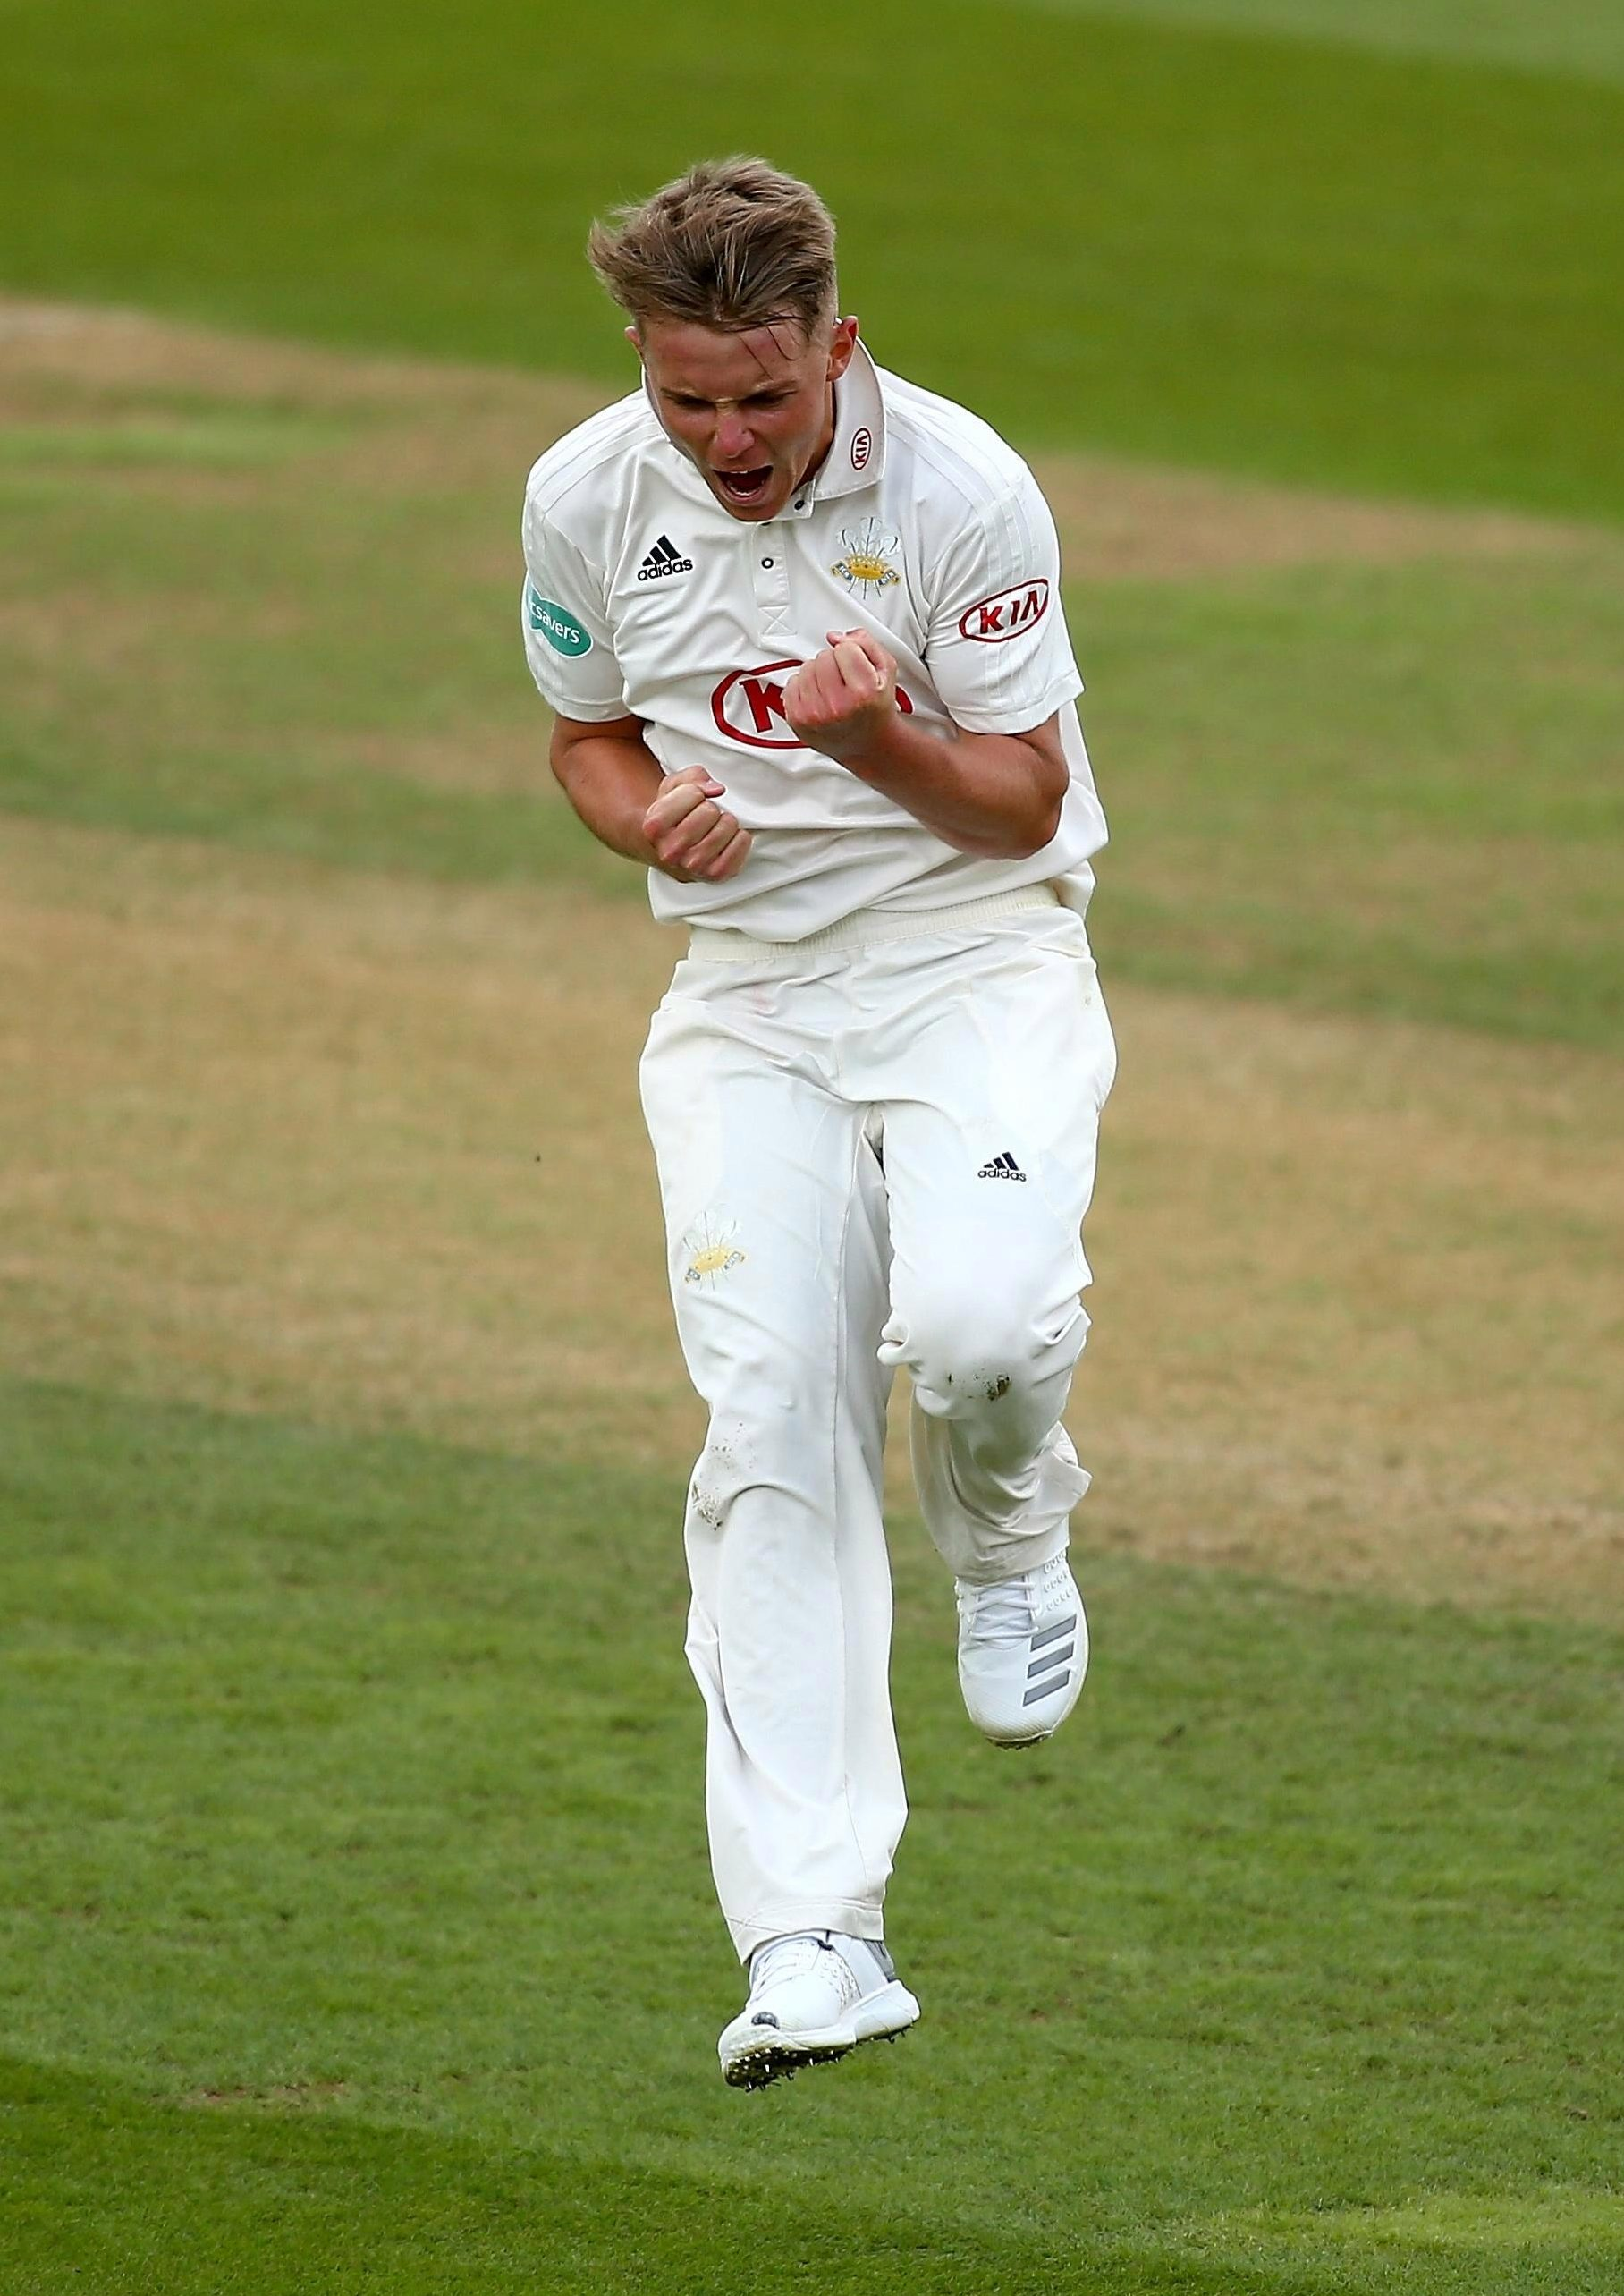 Sam Curran has been drafted into the England squad ahead of second Test against Pakistan